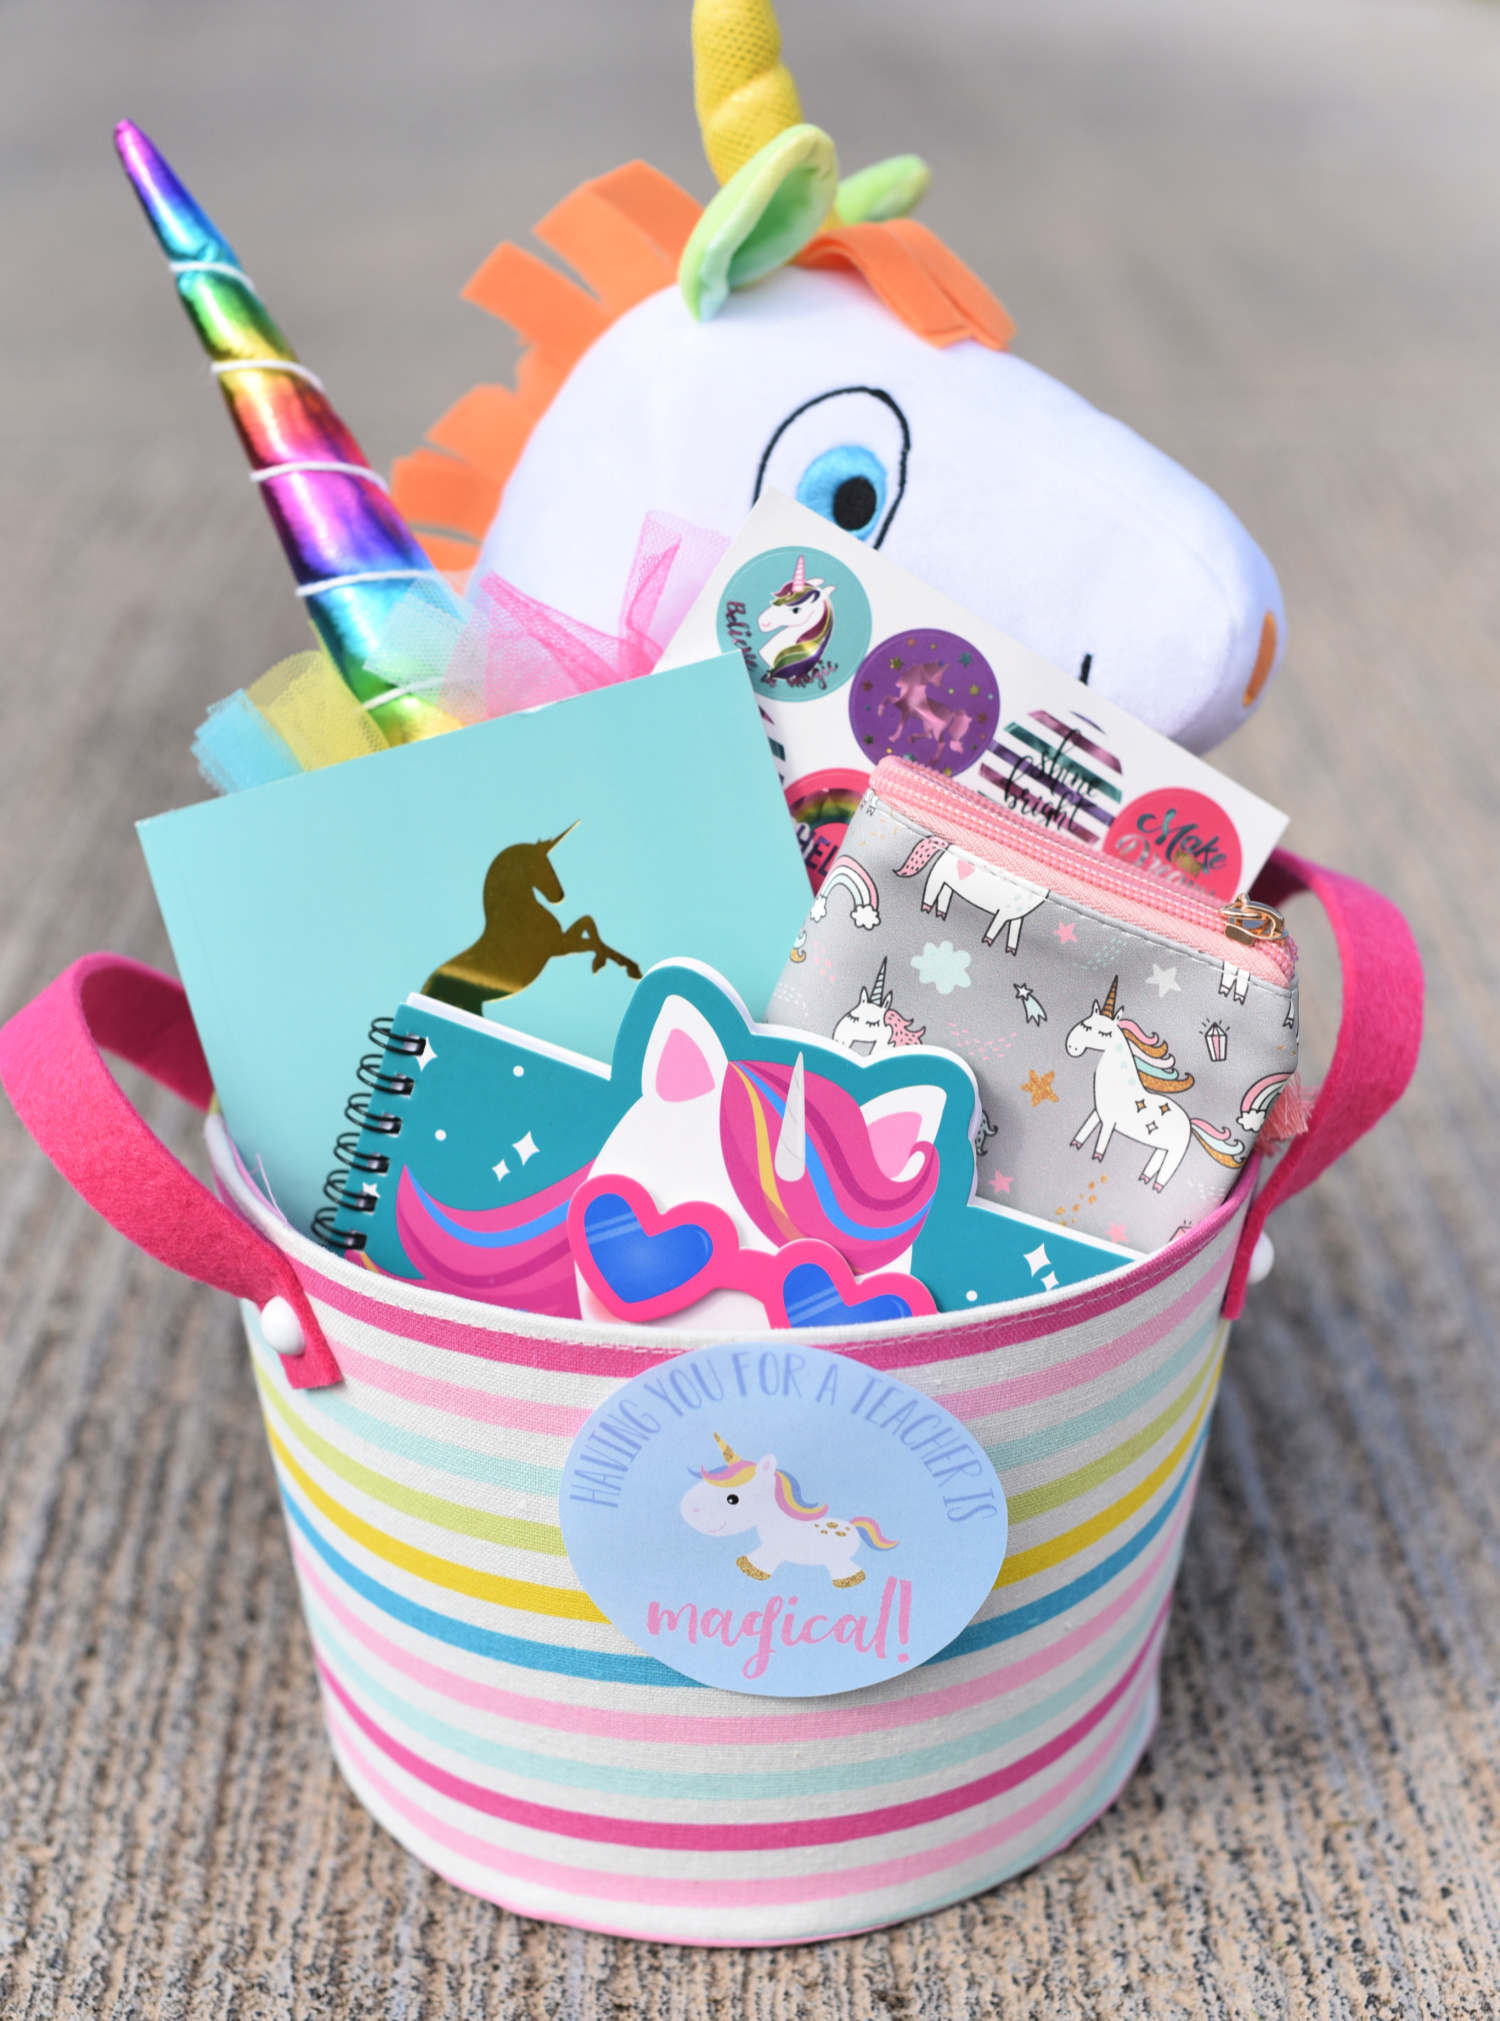 Unicorn Themed Teacher Gift Idea for teacher appreciation, holidays, her birthday, back to school or any occasion! Fill a basket with unicorn themed items and print this cute tag for a magical gift. #unicorns #teacherappreciation #teachergifts #teacherappreciationweek